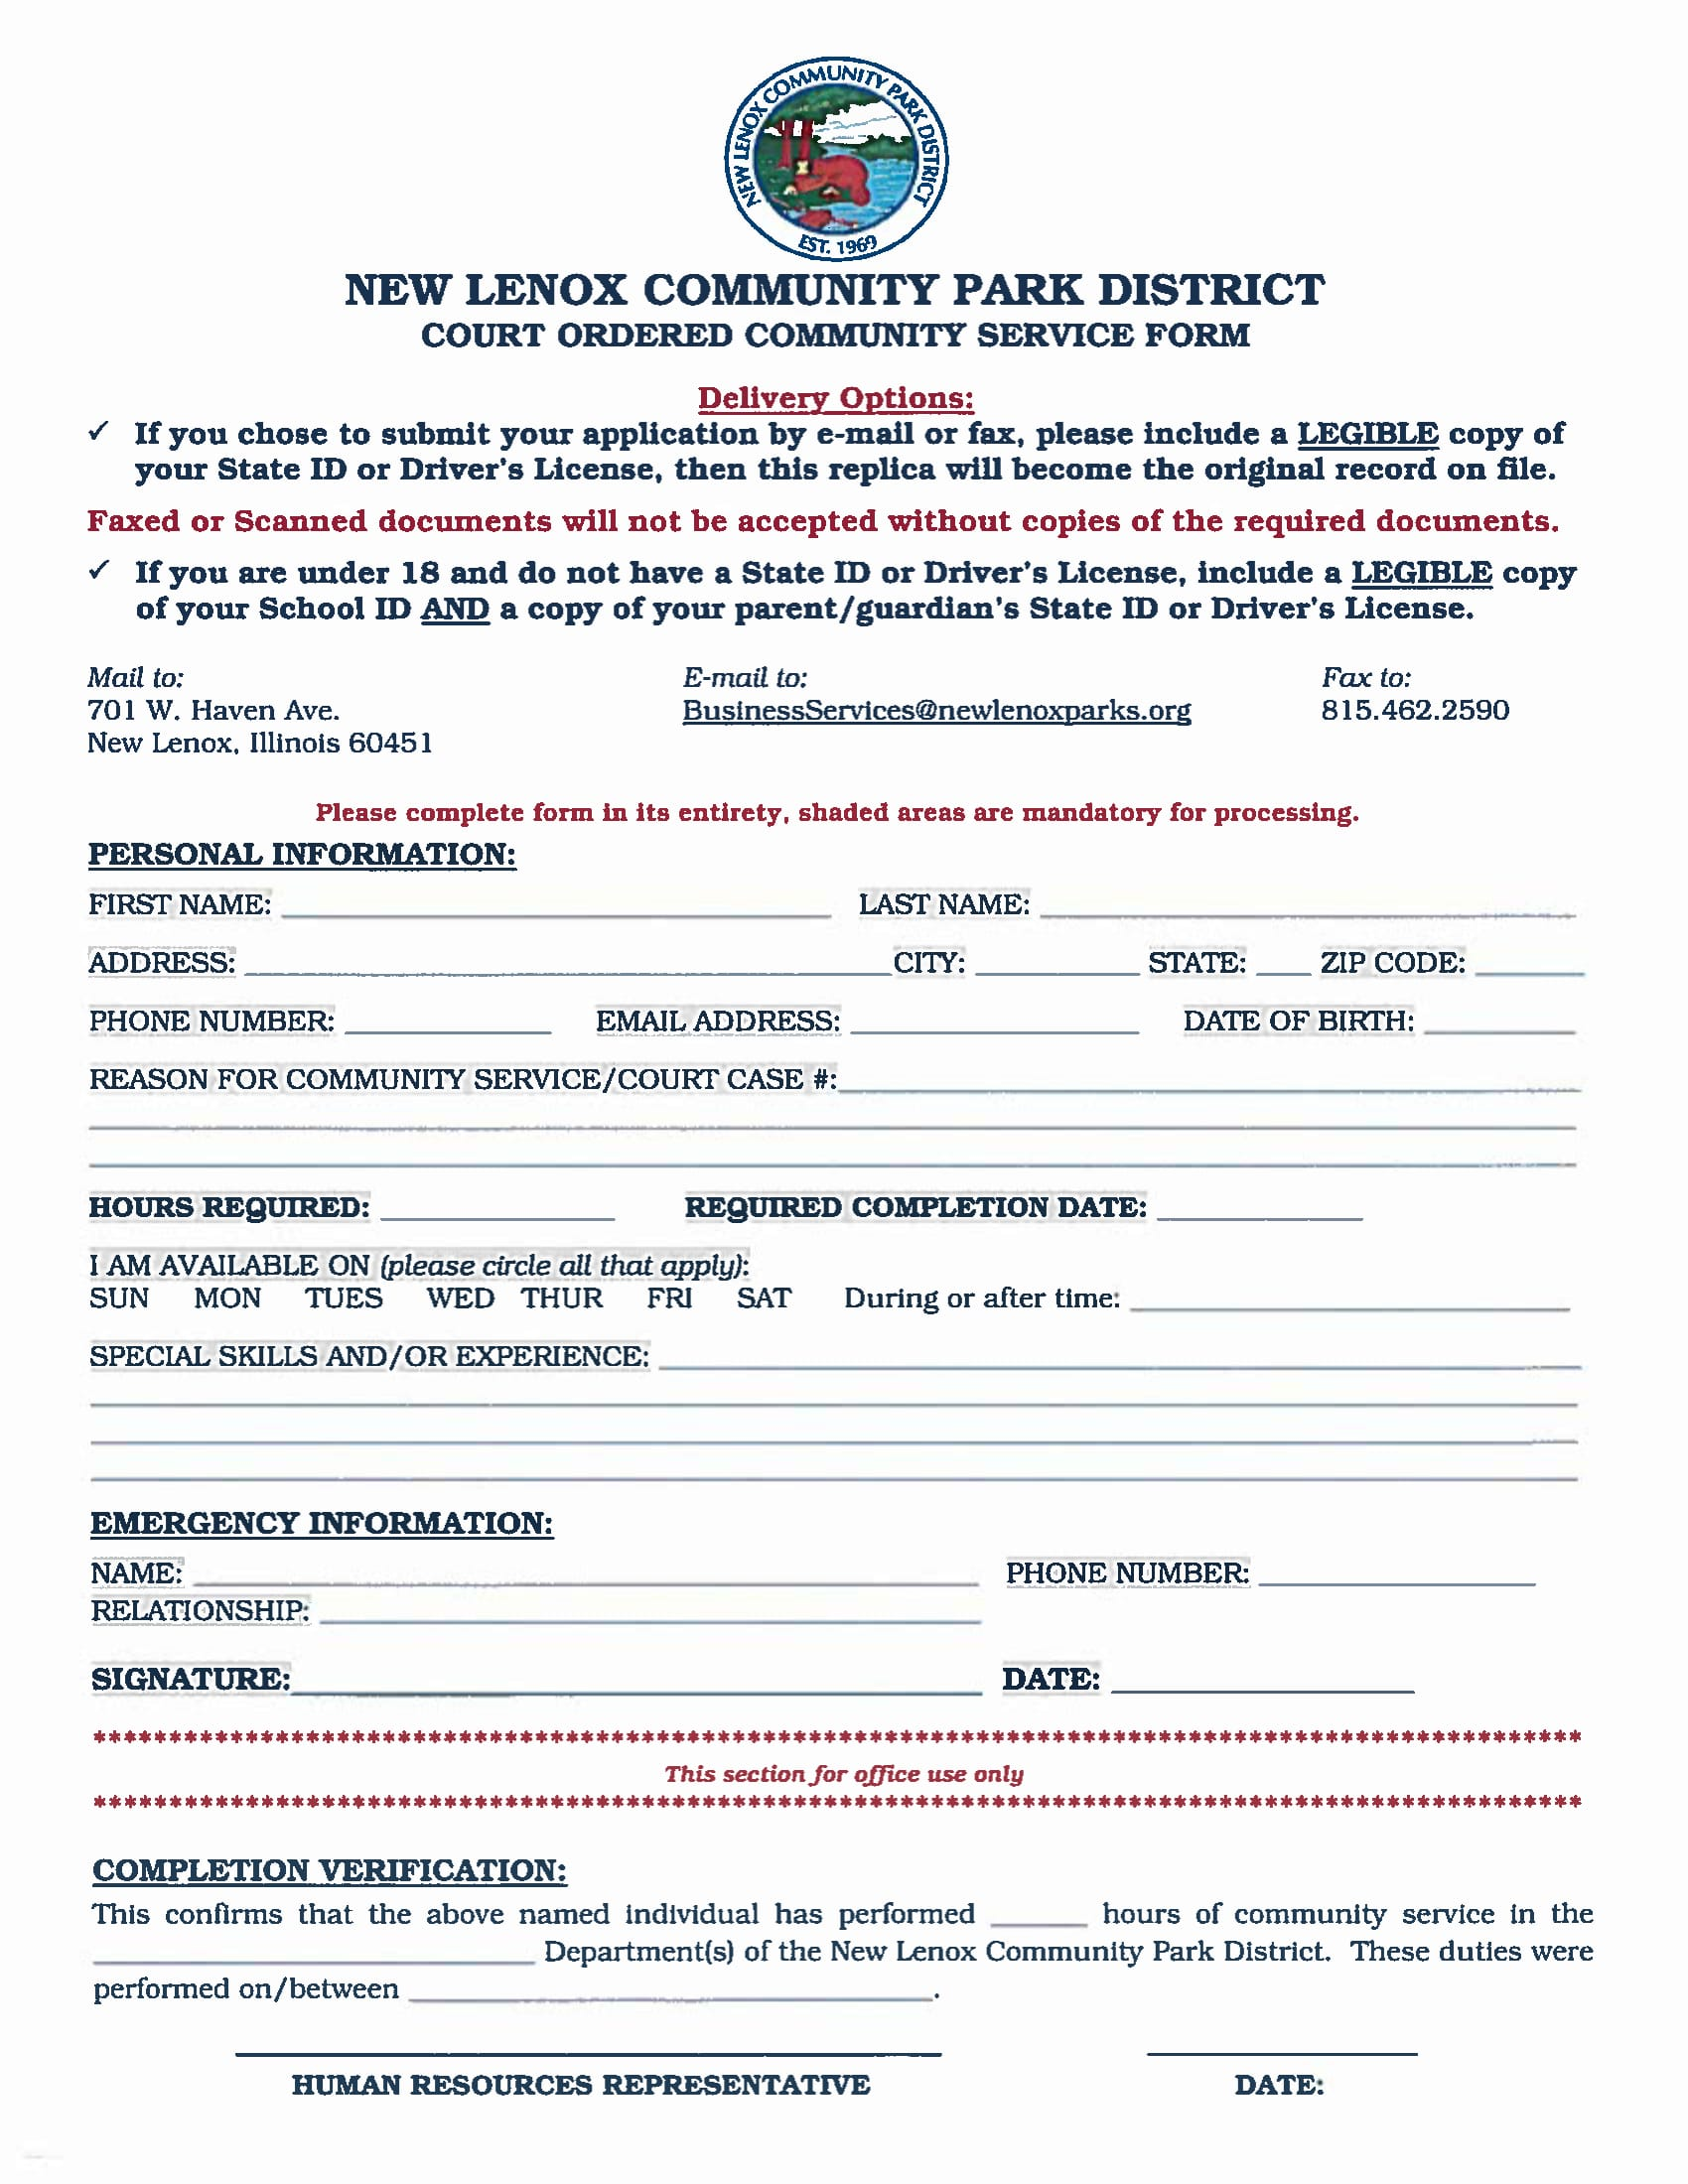 court order community service form 1